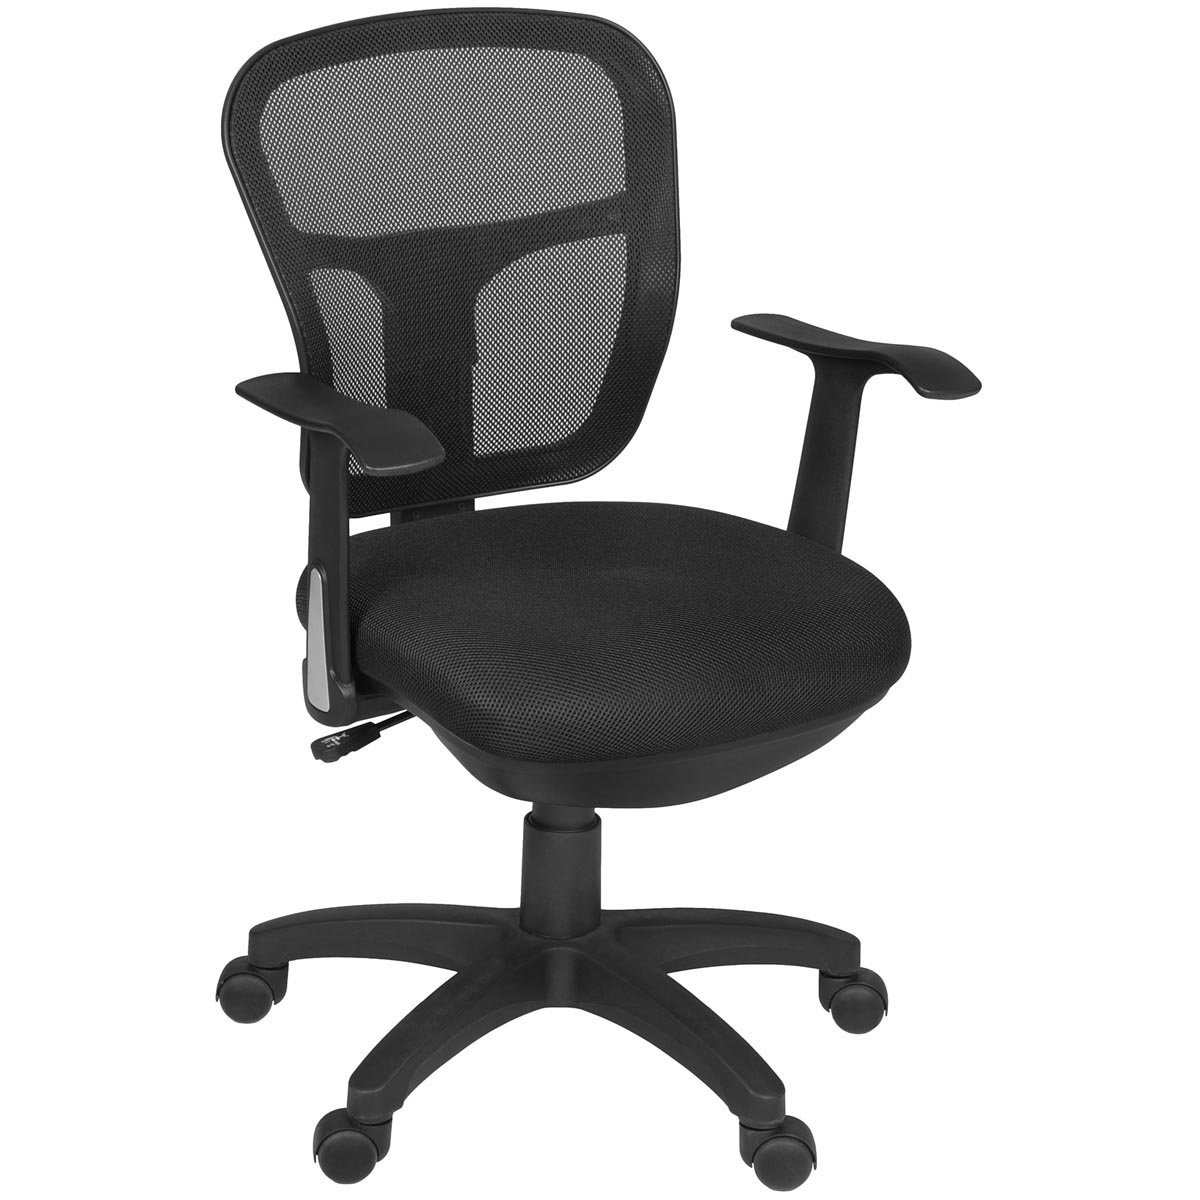 balt posture perfect chair summer chaise lounge chairs office and task schoolsin